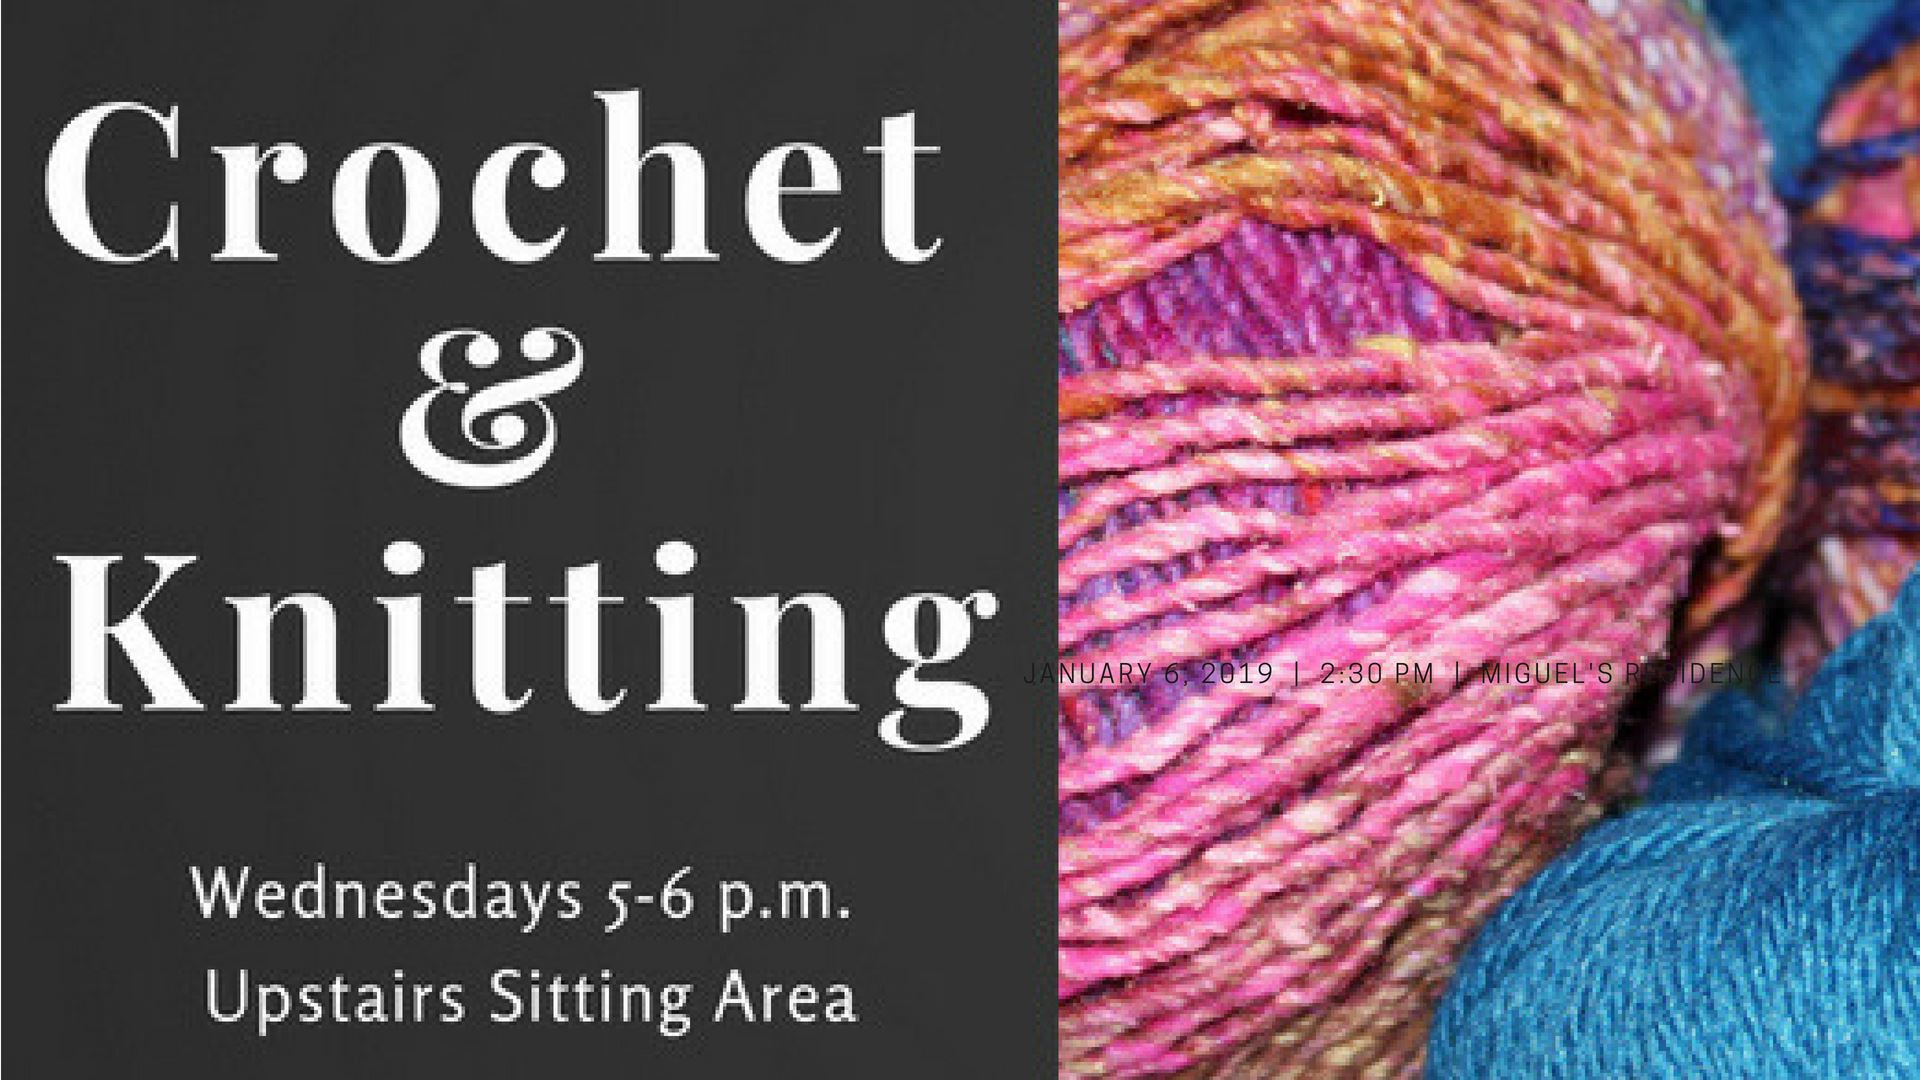 CrochetAndKnitting